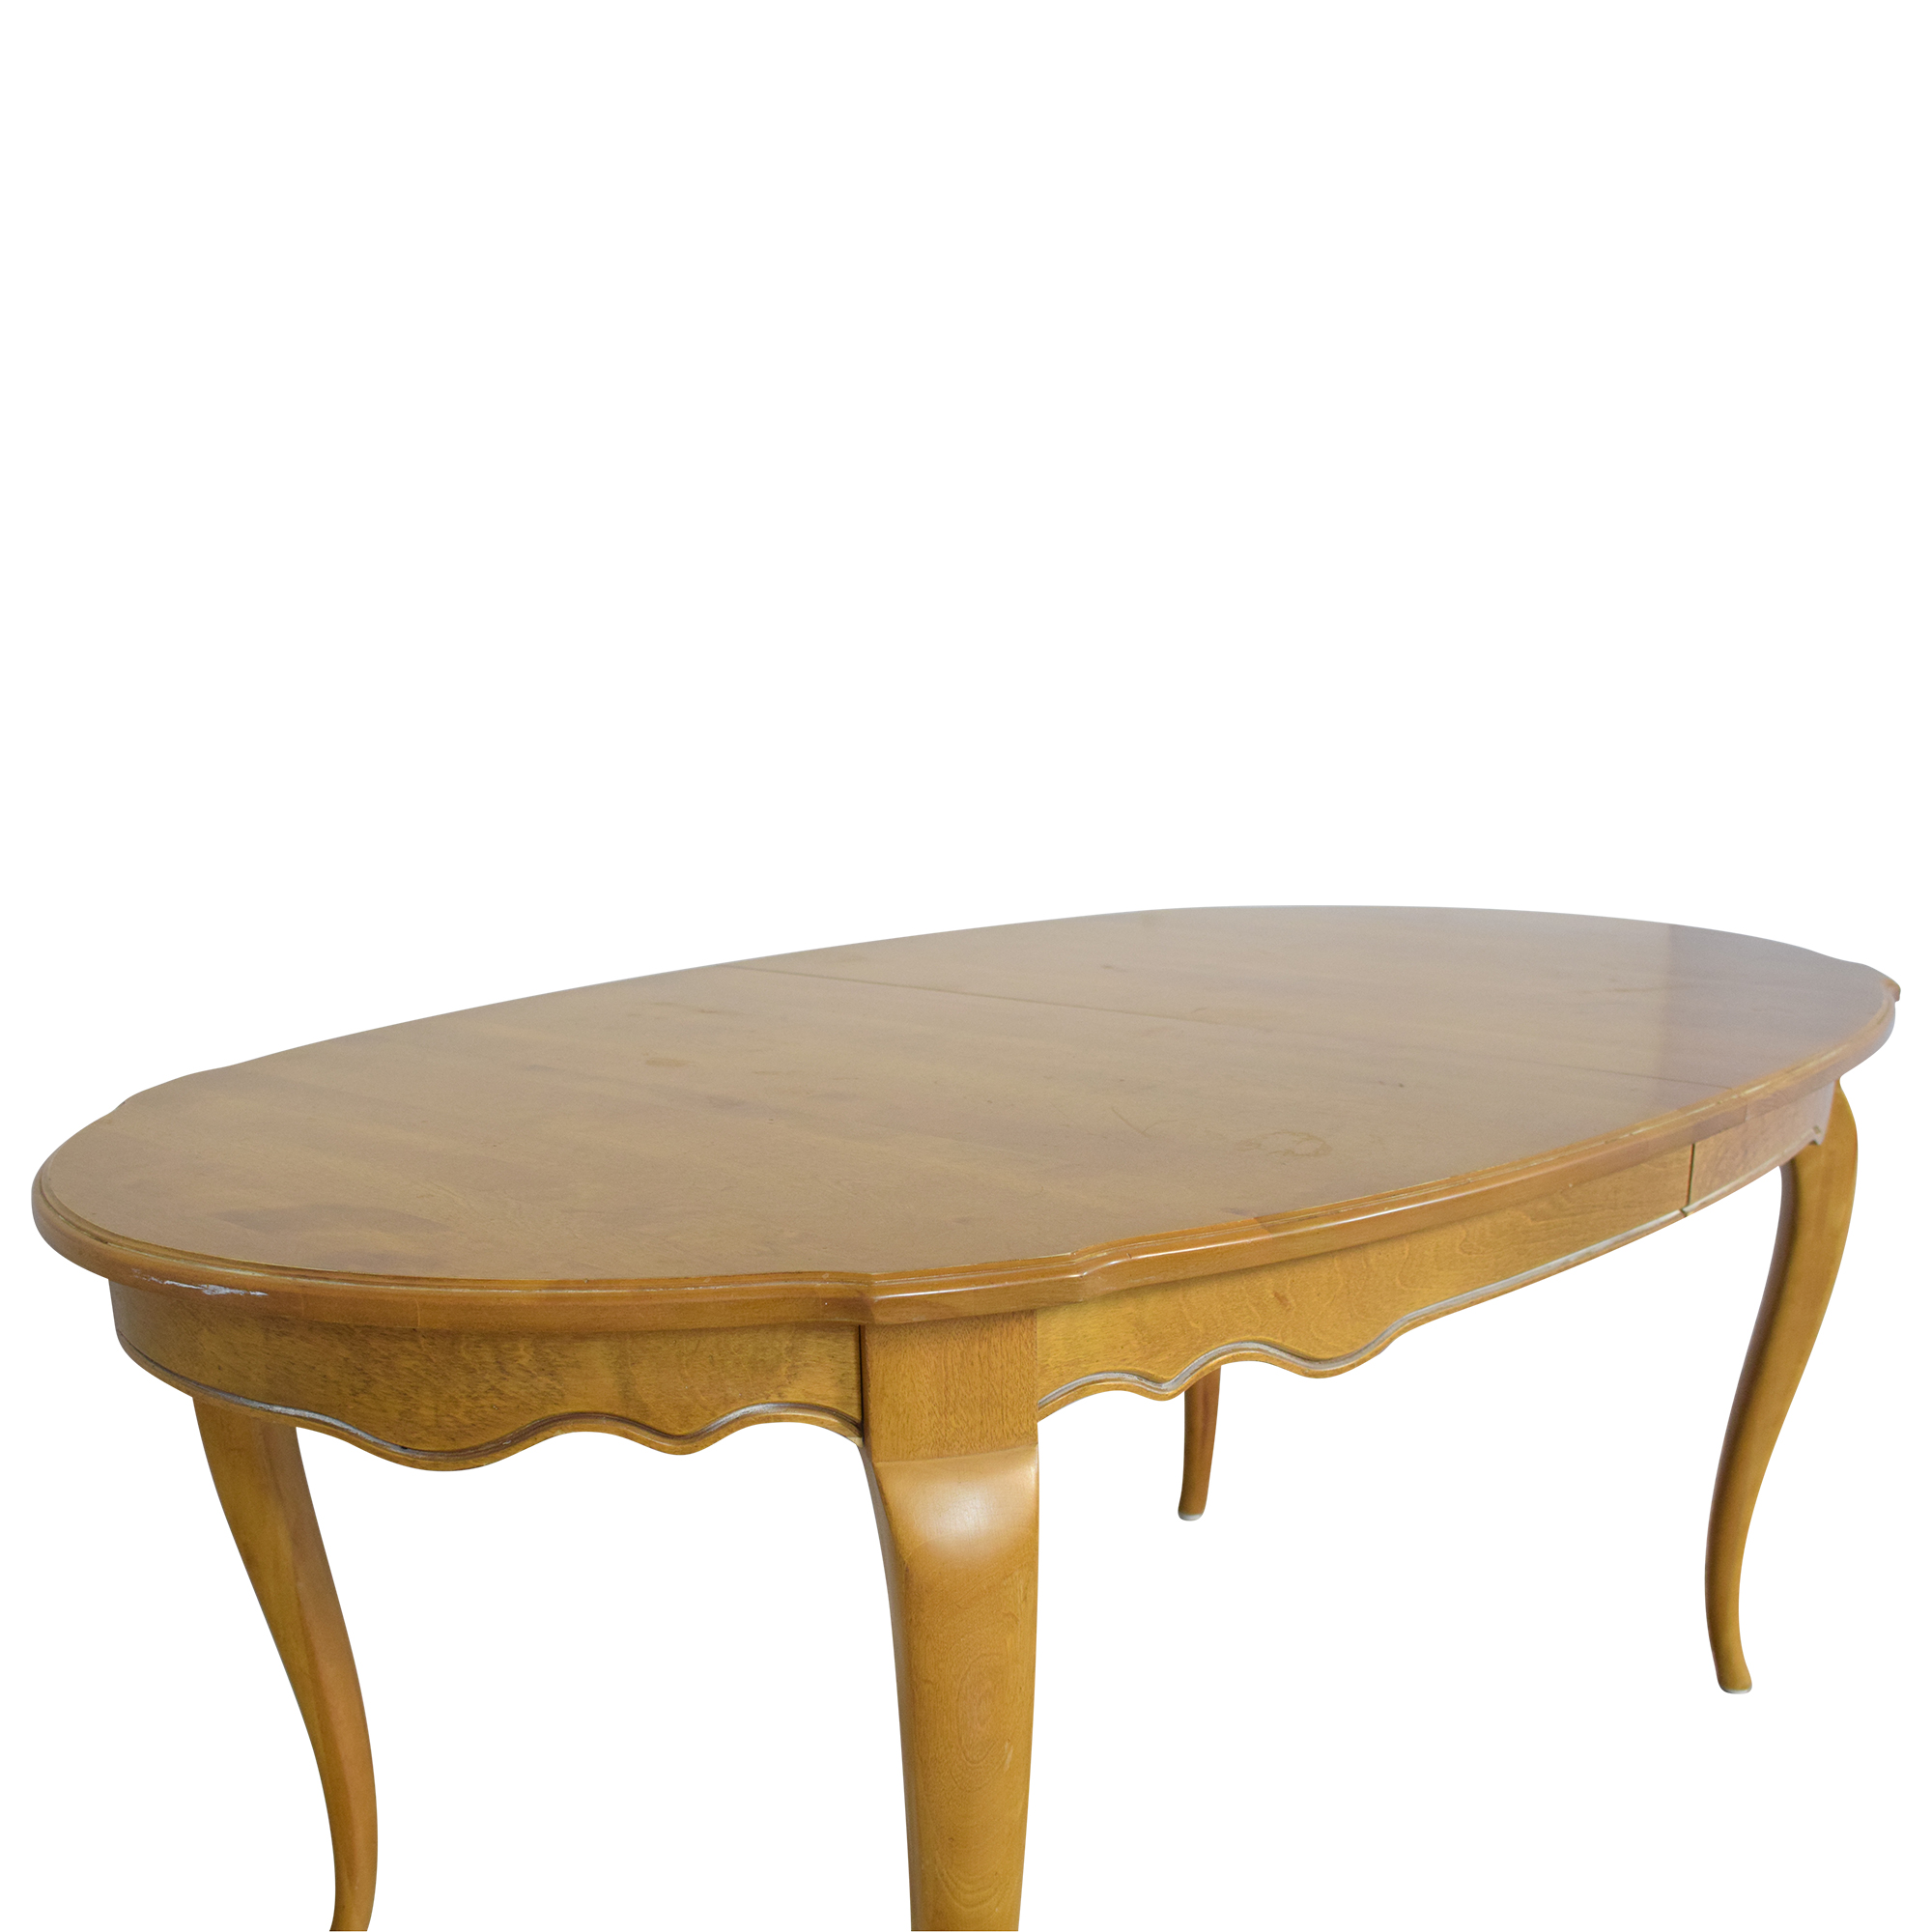 Ethan Allen Ethan Allen Country French Extendable Dining Table nj